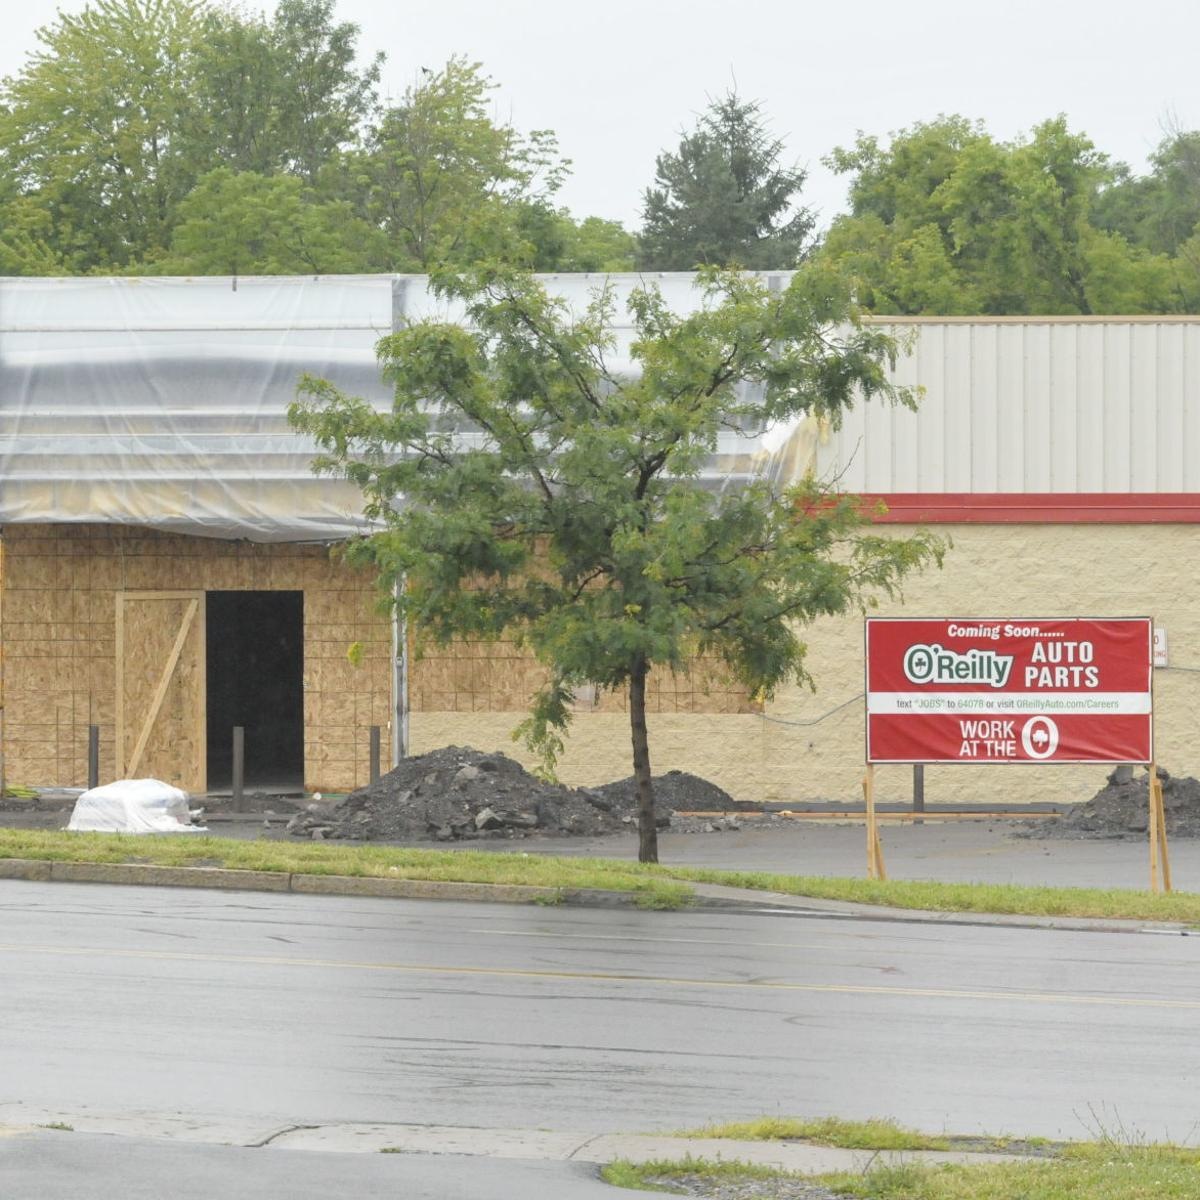 Orally Auto Part Near Me >> O Reilly Auto Parts Plans Fall Opening For Auburn Store